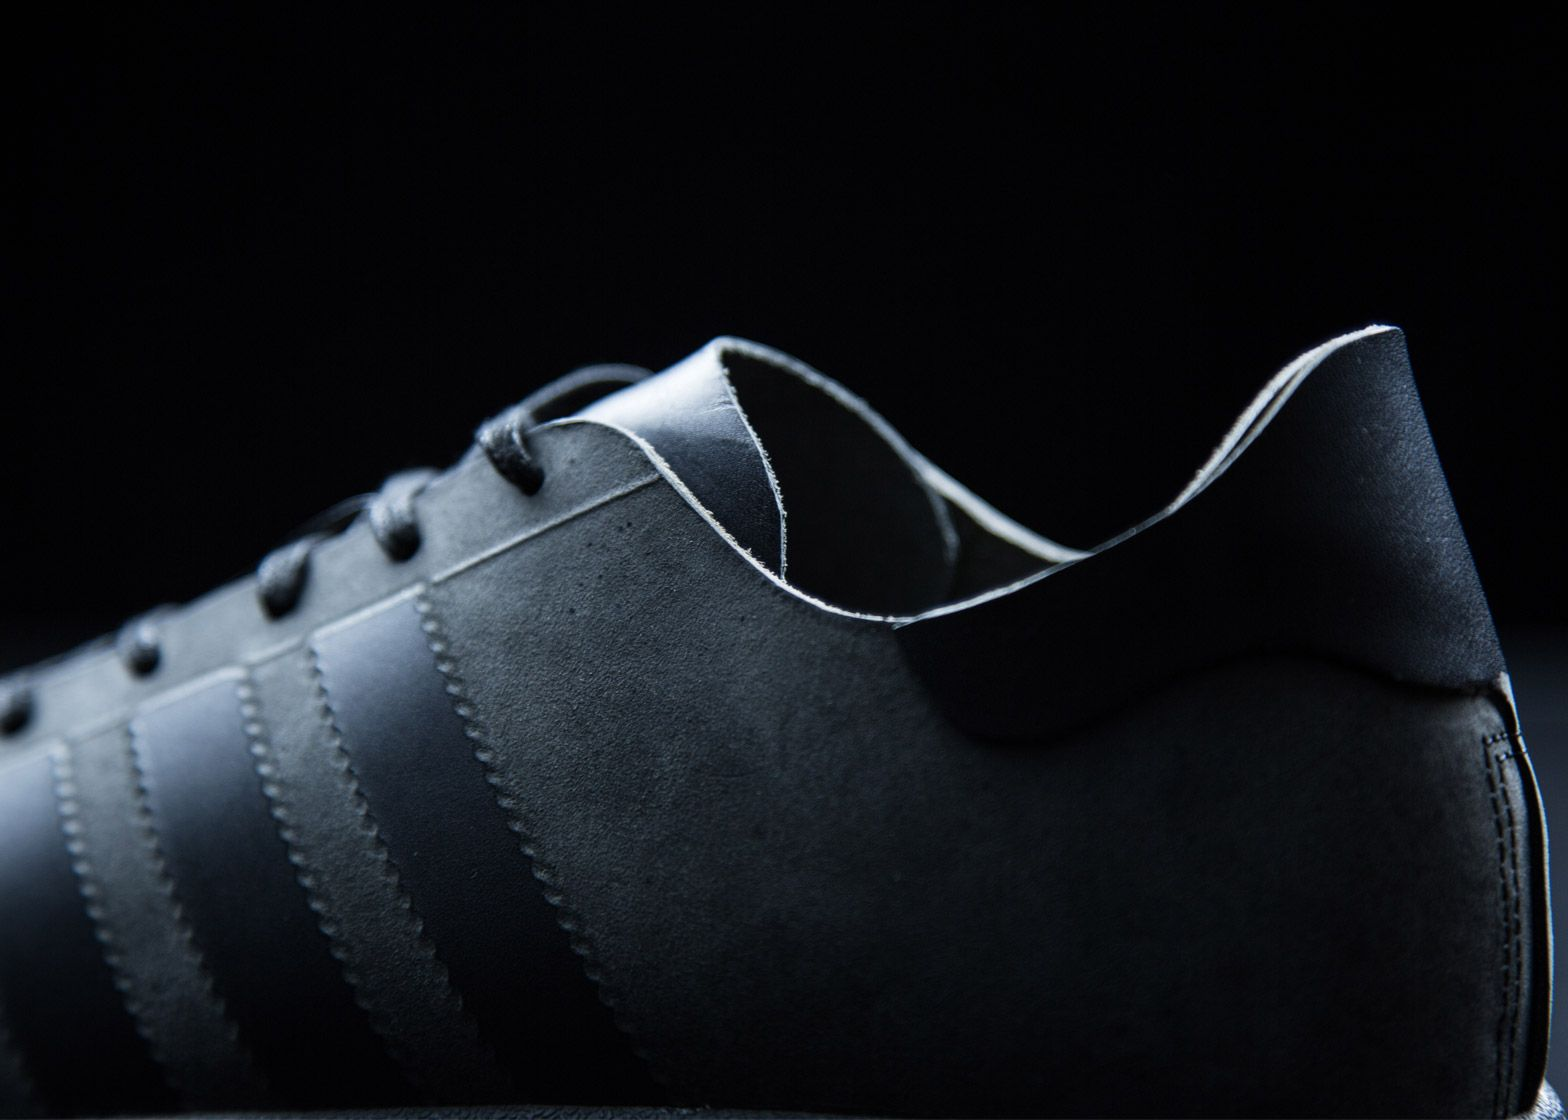 Adidas Shoes Design